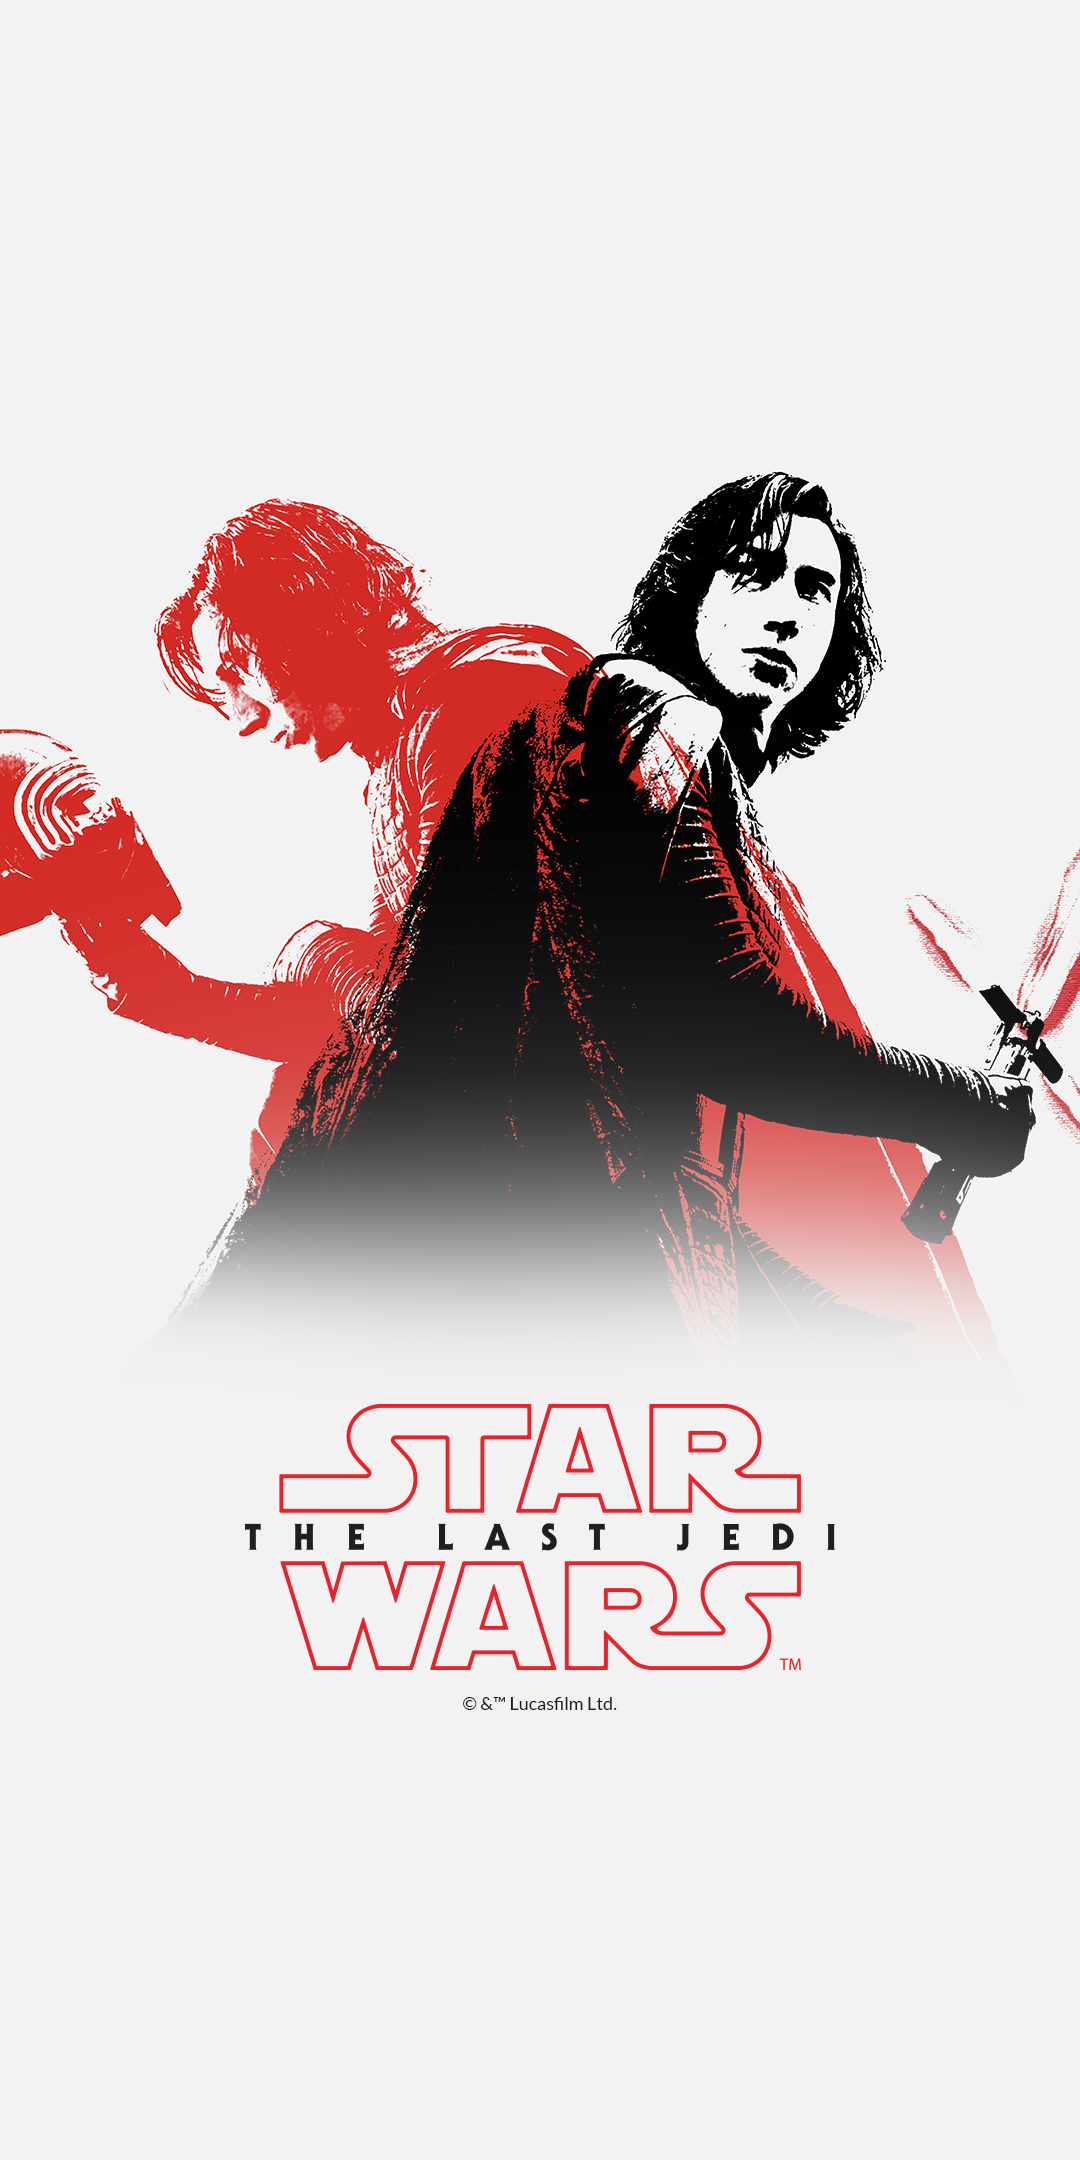 Feel free to download and go nuts with the placement on your smartphone device. The first wallpaper shows the Star Wars: The Last ...